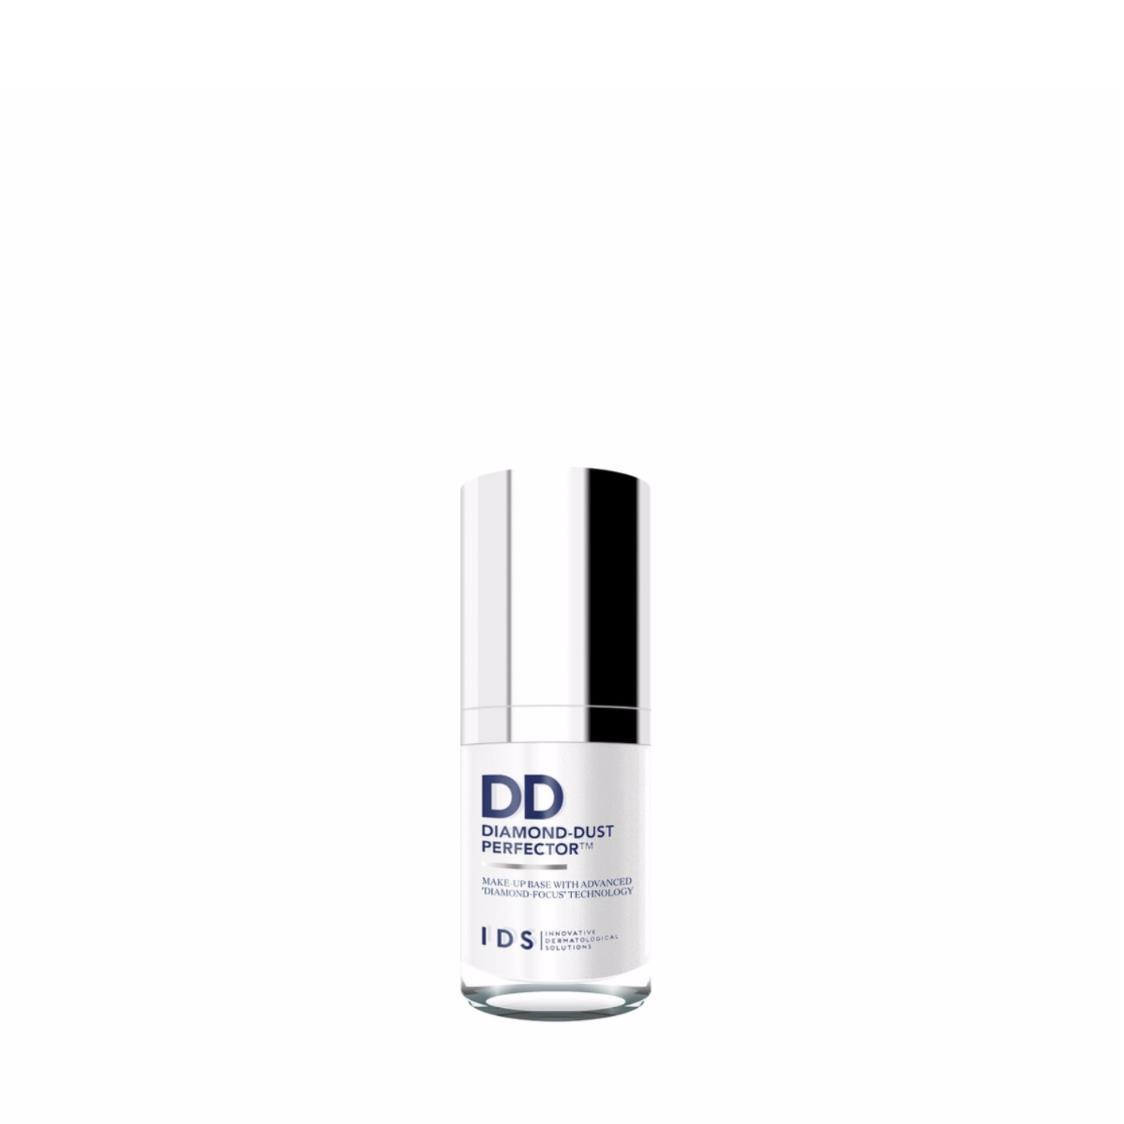 Diamond-Dust Perfector 15ml